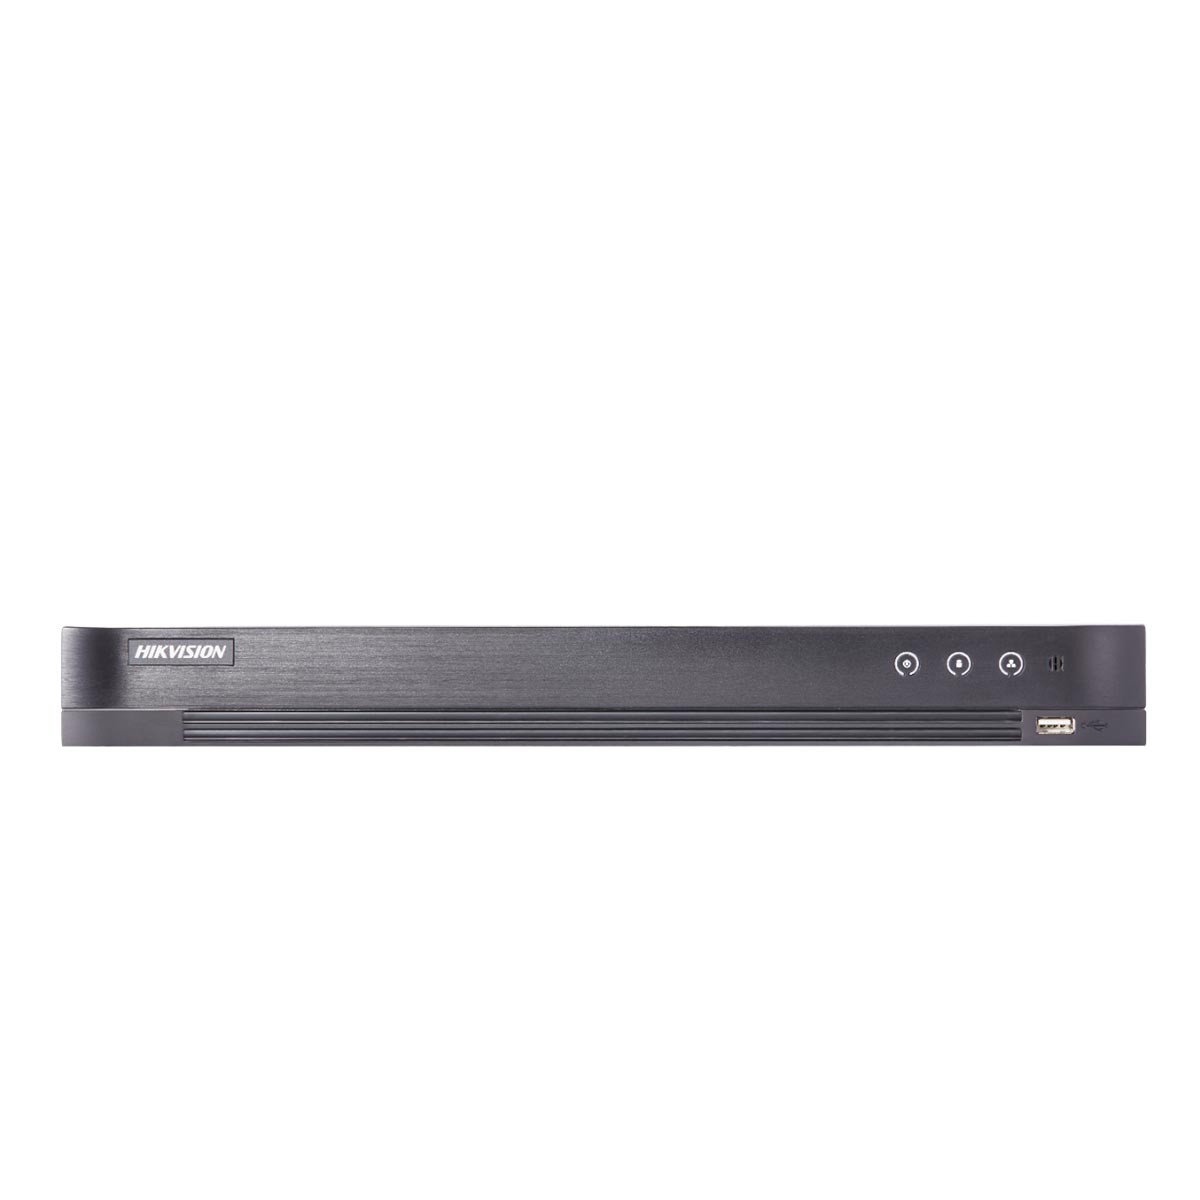 DVR STAND ALONE HIKVISION 2MP 16 CANAIS COM HD 1 TB IDS-7216HQHI-M1/S